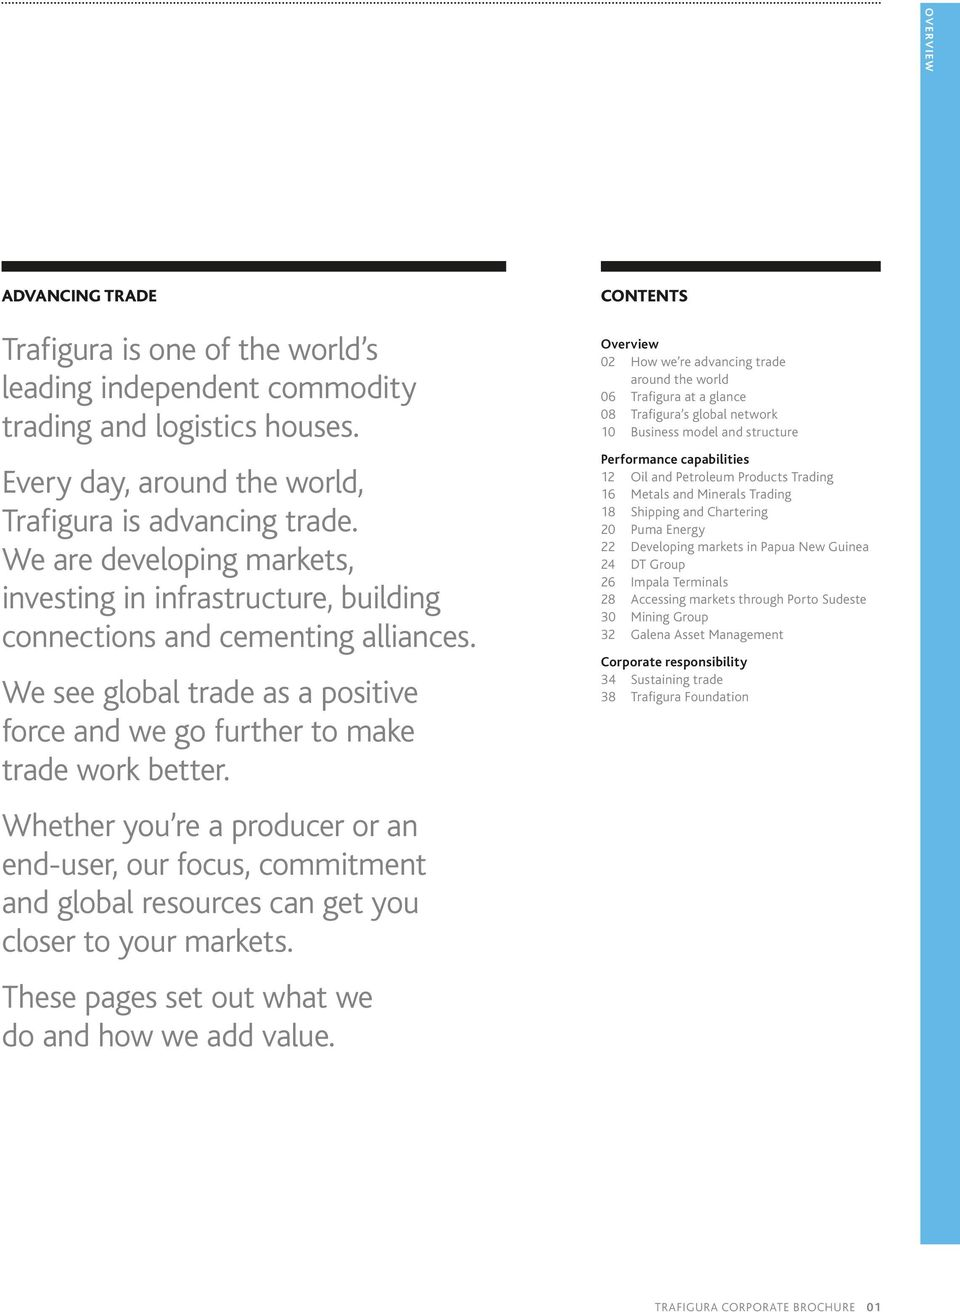 ENGLISH ADVANCING TR ADE TRAFIGURA GROUP CORPORATE BROCHURE